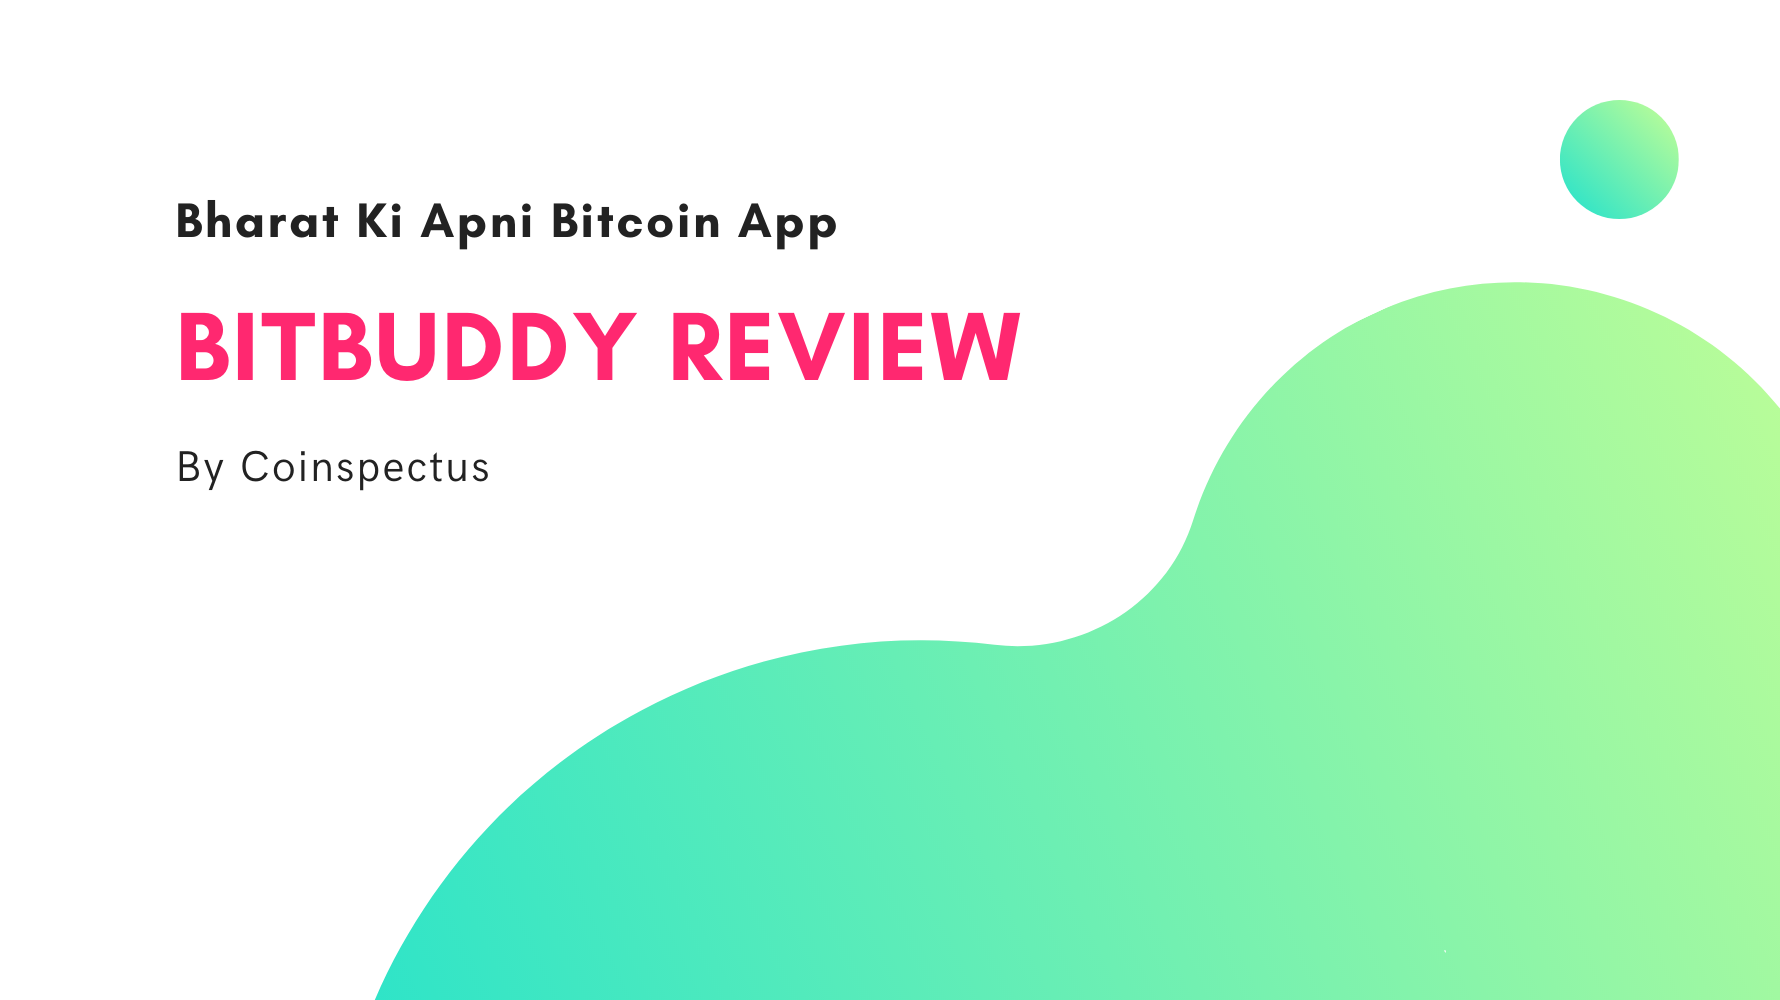 BitBuddy Review: India's Safest Bitcoin Marketplace